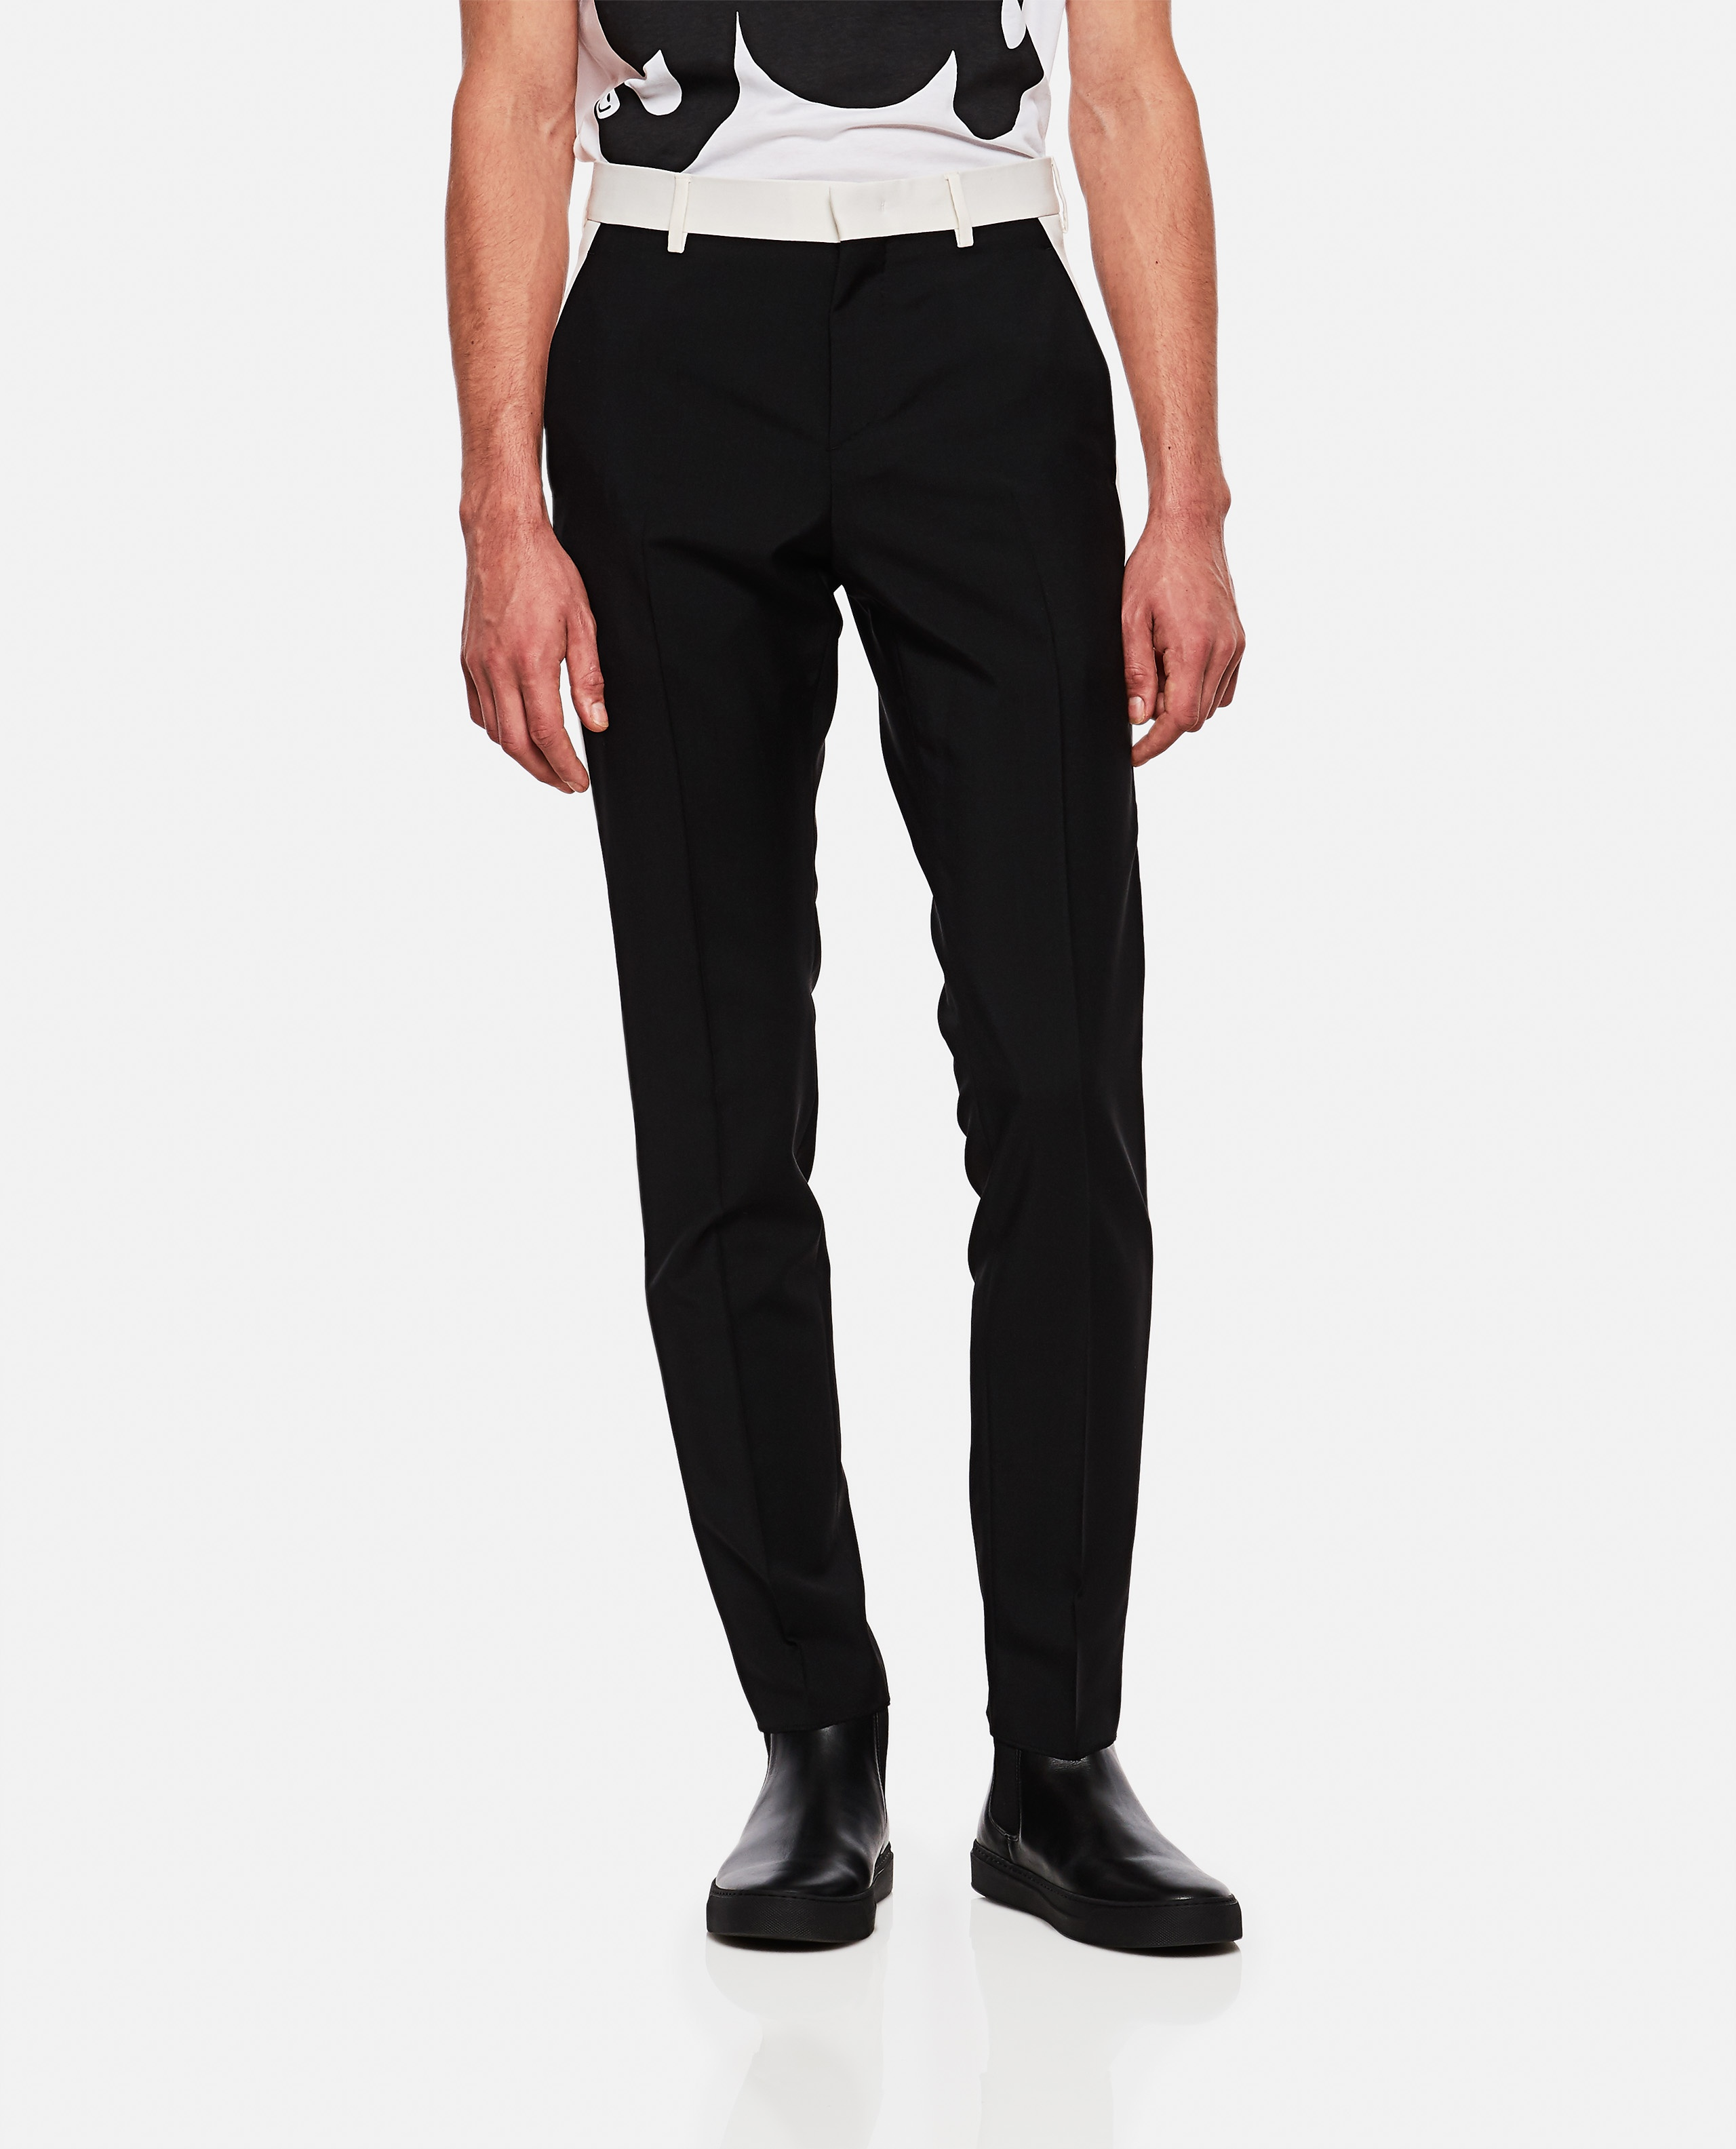 Trousers with side bands Men Valentino 000263920039003 1